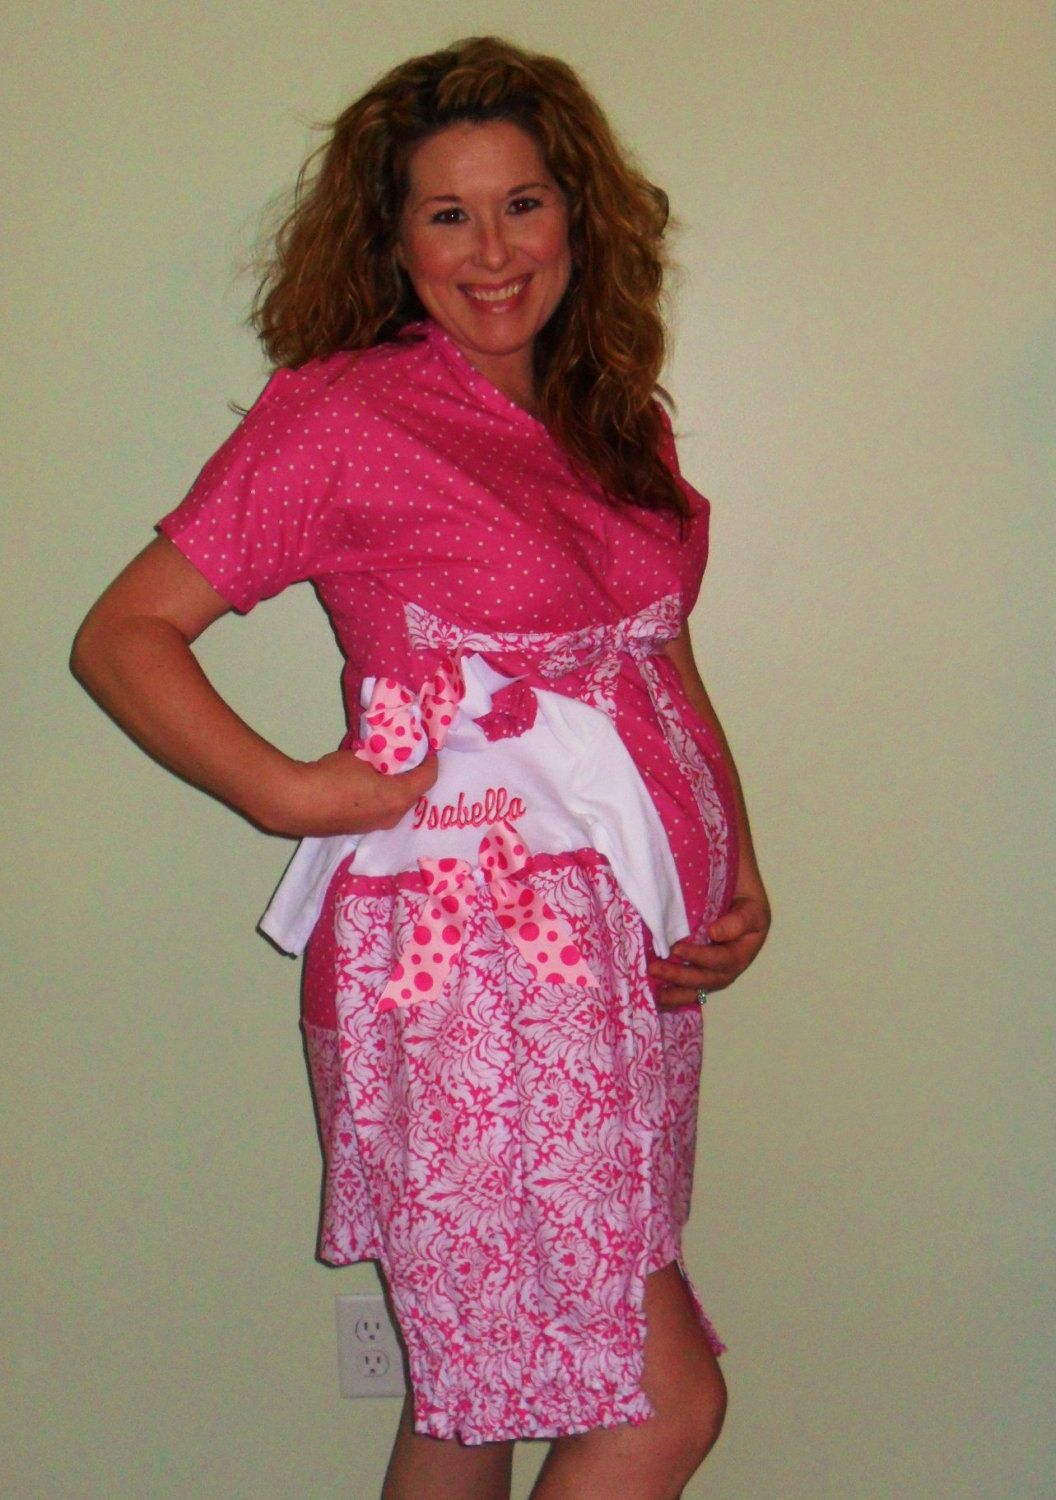 Unusual Monogram Maternity Hospital Gown Images - Images for wedding ...